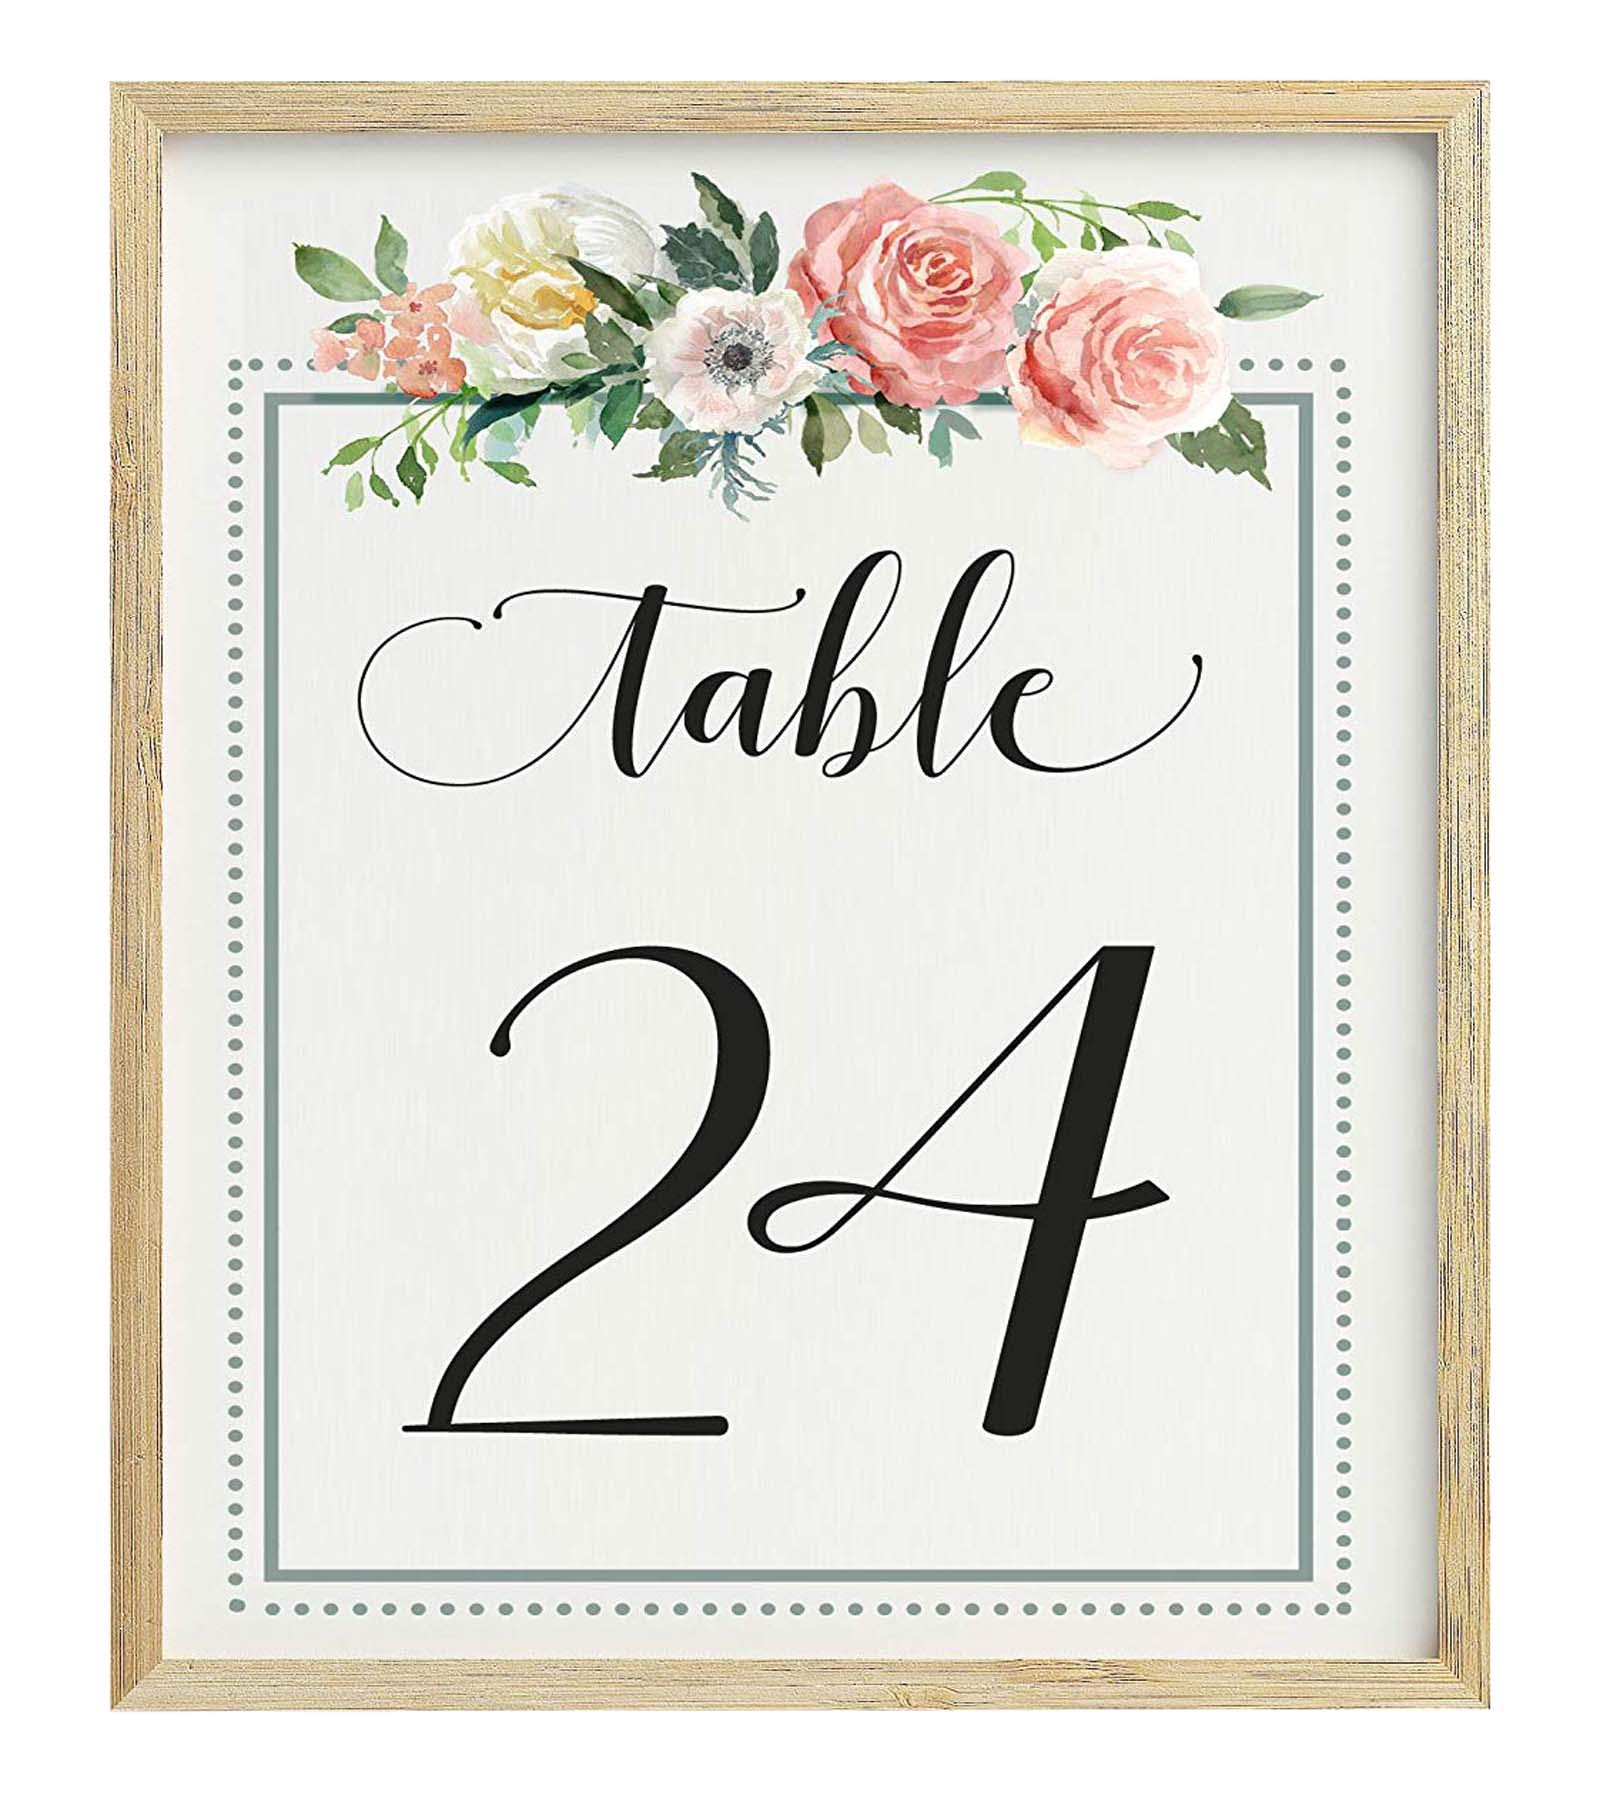 Darling Souvenir Calligraphy 1-50 Floral Table Numbers Wedding Reception Décor Table Cards (5x7 Inches) by Darling Souvenir